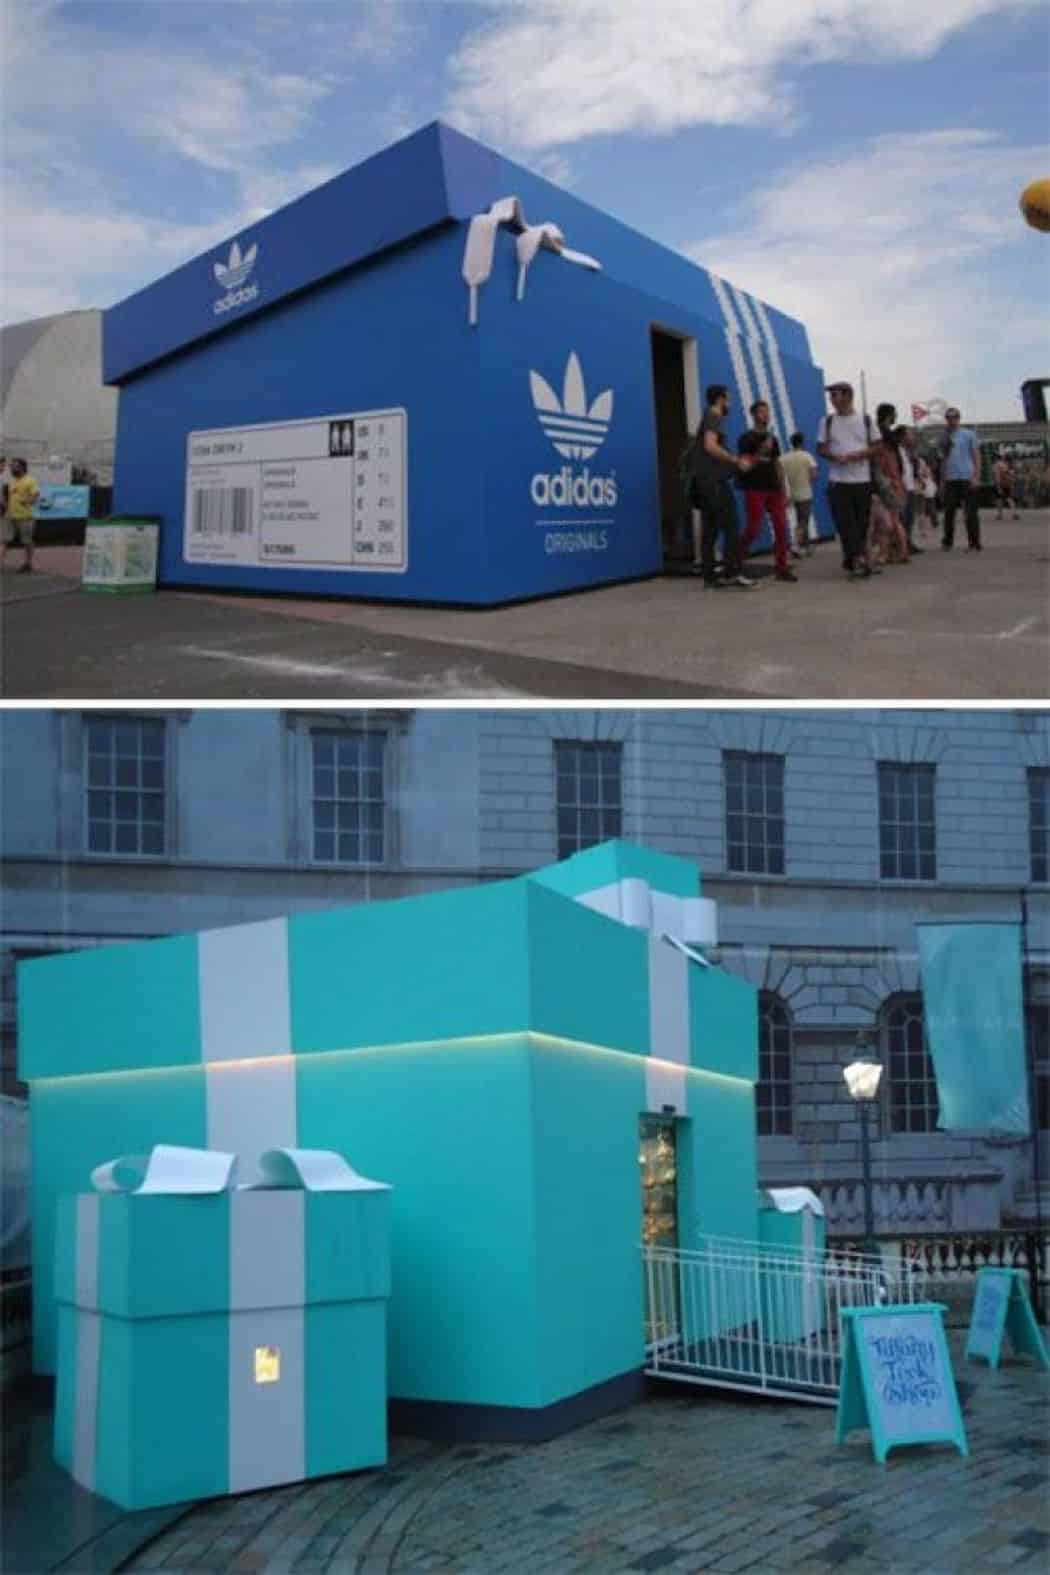 Adidas and Tiffany & Co. experiential guerilla marketing pop-up stores in shape of products